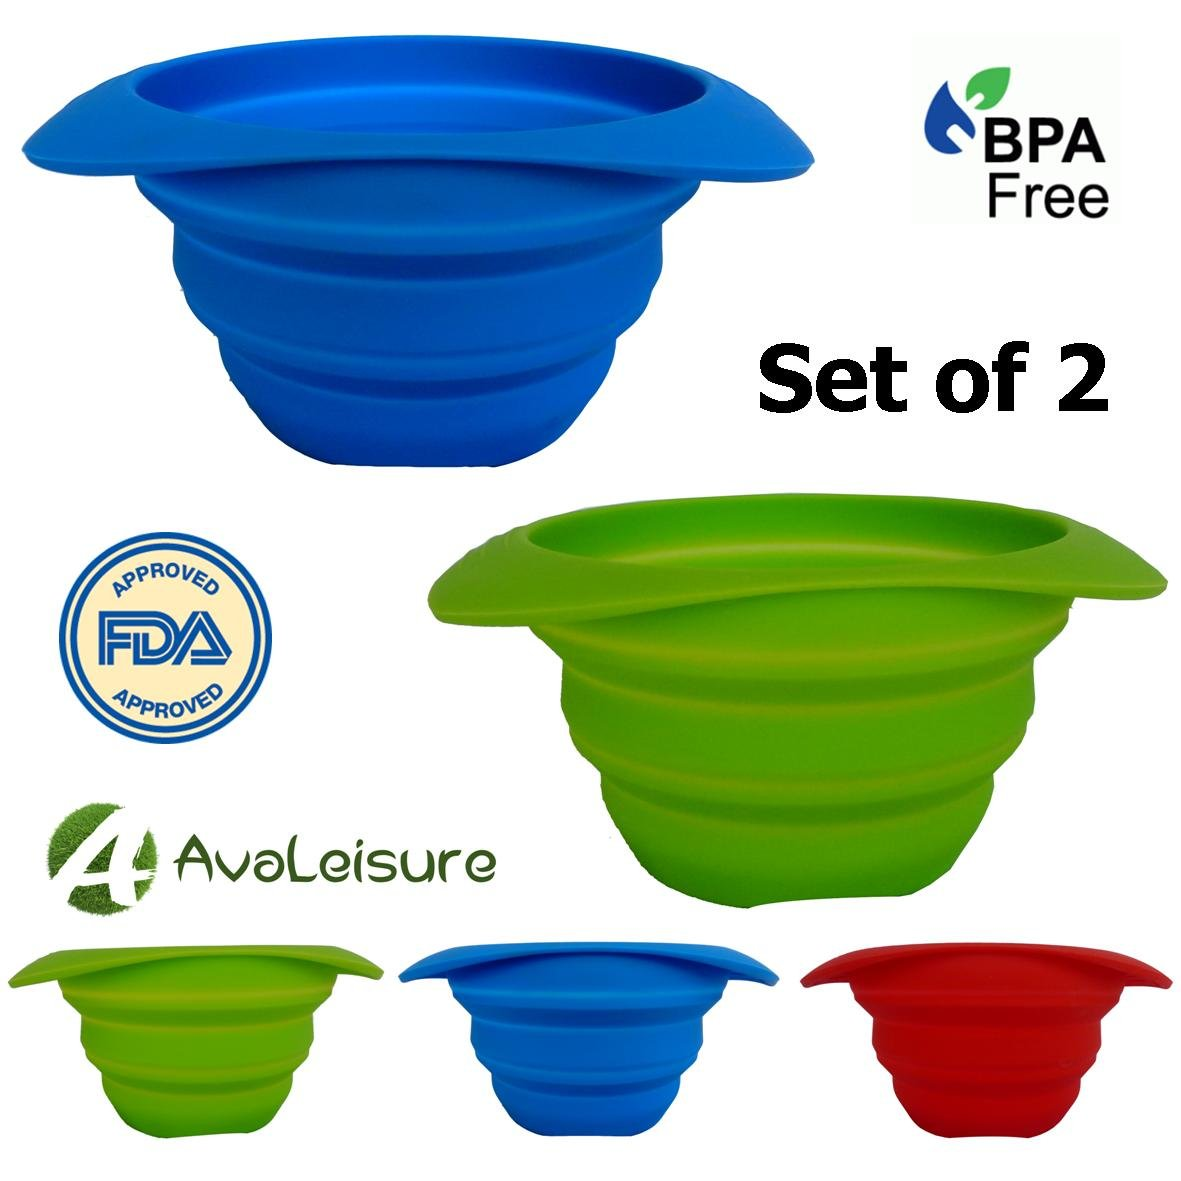 AVALEISURE COLLAPSIBLE BOWL - 25oz/750ml - Set of 2 Bowls or 1 Bowl With 4 Sporks - For Camping, RV, Backpacking, Mixing & Eating Camp Food – Ideal as a Dog Food & Water Bowl - BPA-Free, Space-saving